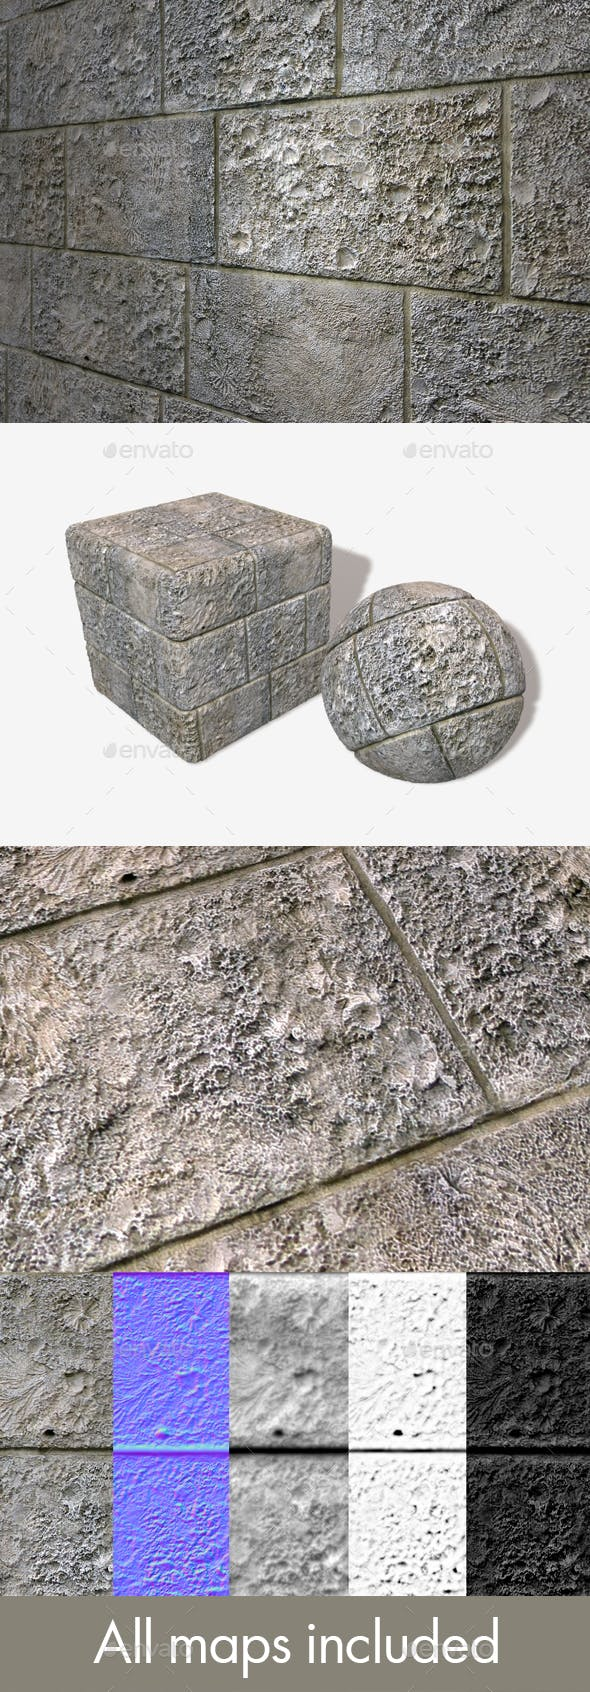 Fossil Printed Bricks Seamless Texture - 3DOcean Item for Sale